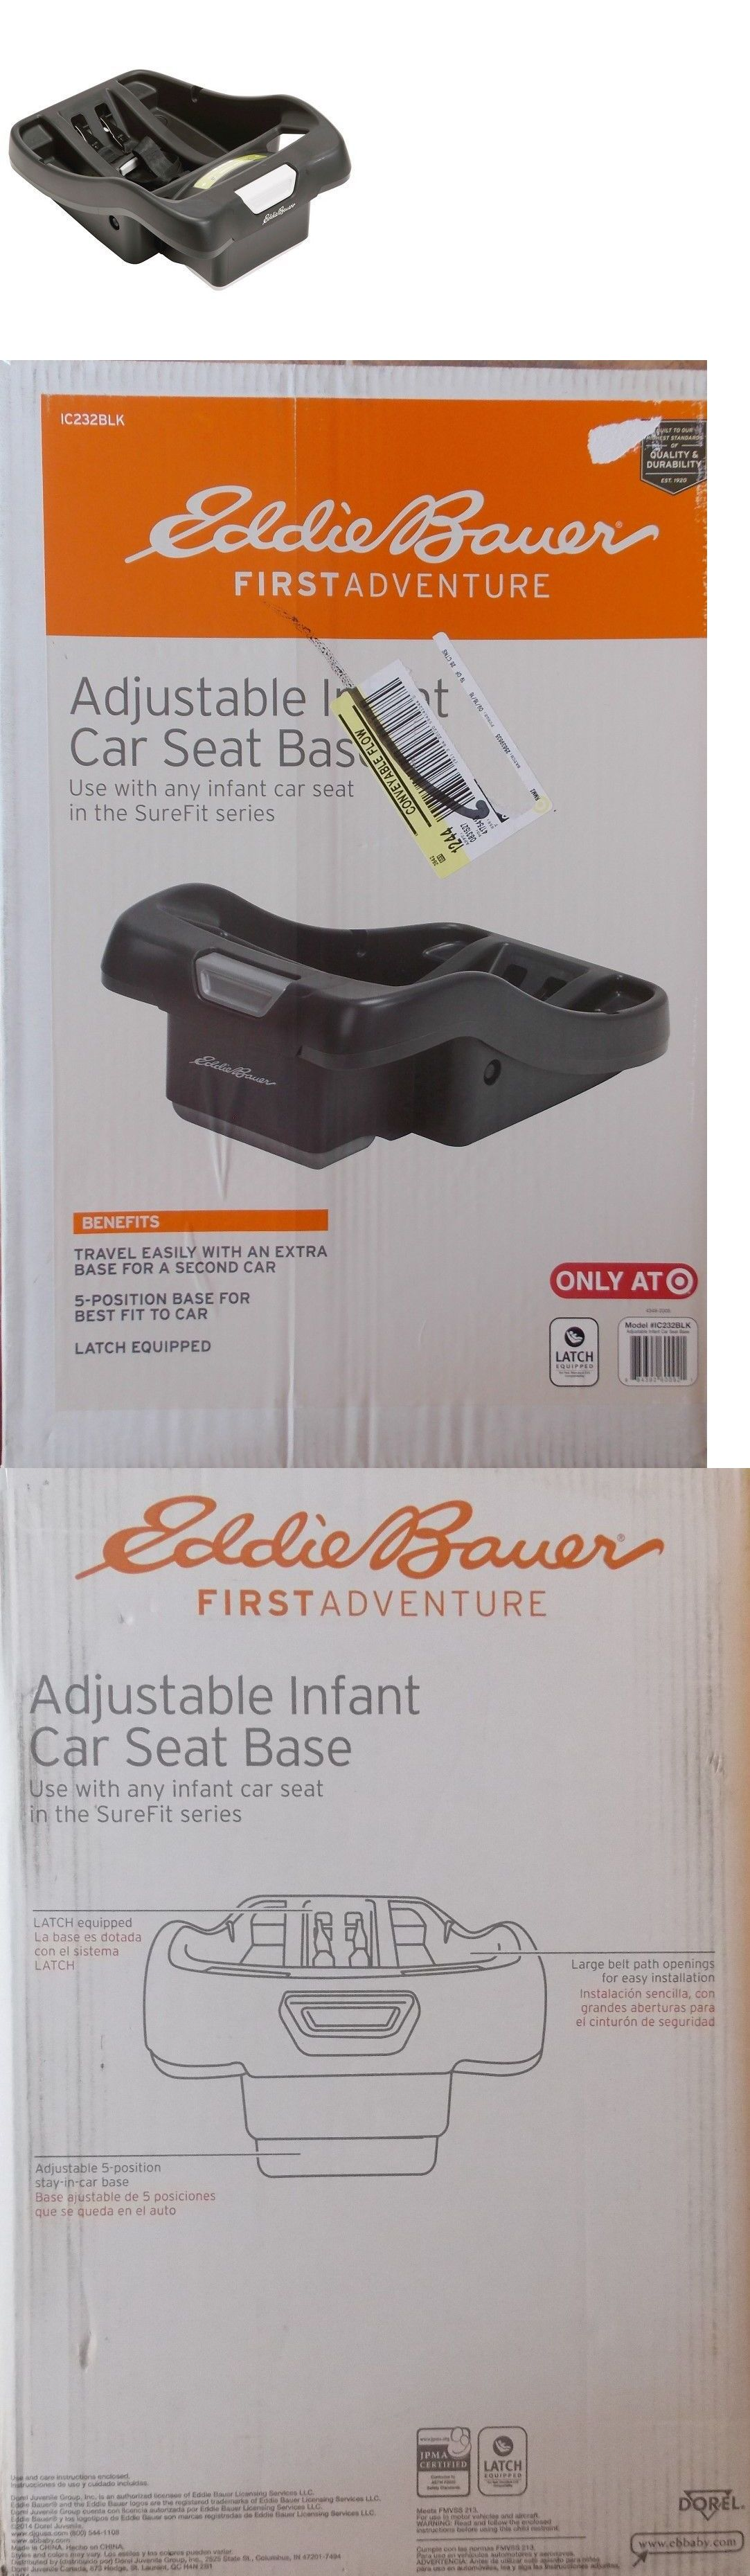 Other Car Safety Seats 2987 New Eddie Bauer First Adventure Adjustable Seat Base For Surefit Series BUY IT NOW ONLY 3995 On EBay